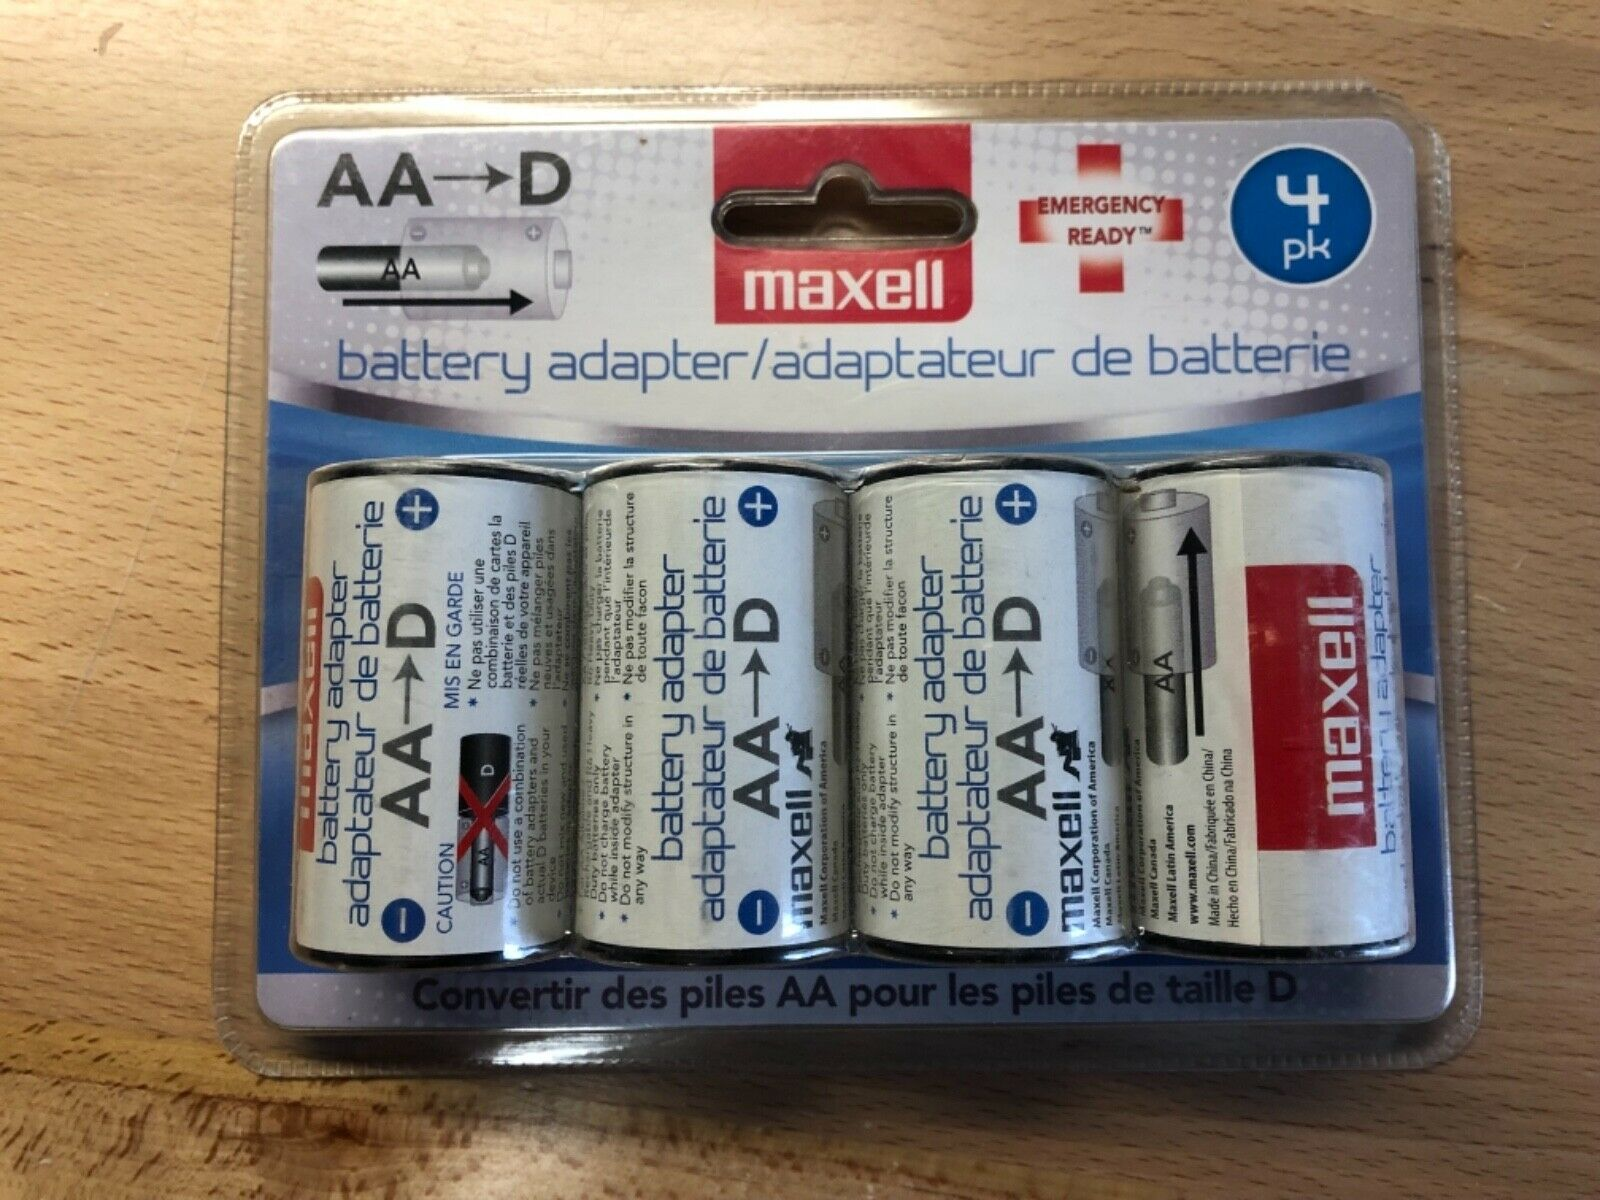 AA to D Maxell Battery Adapter